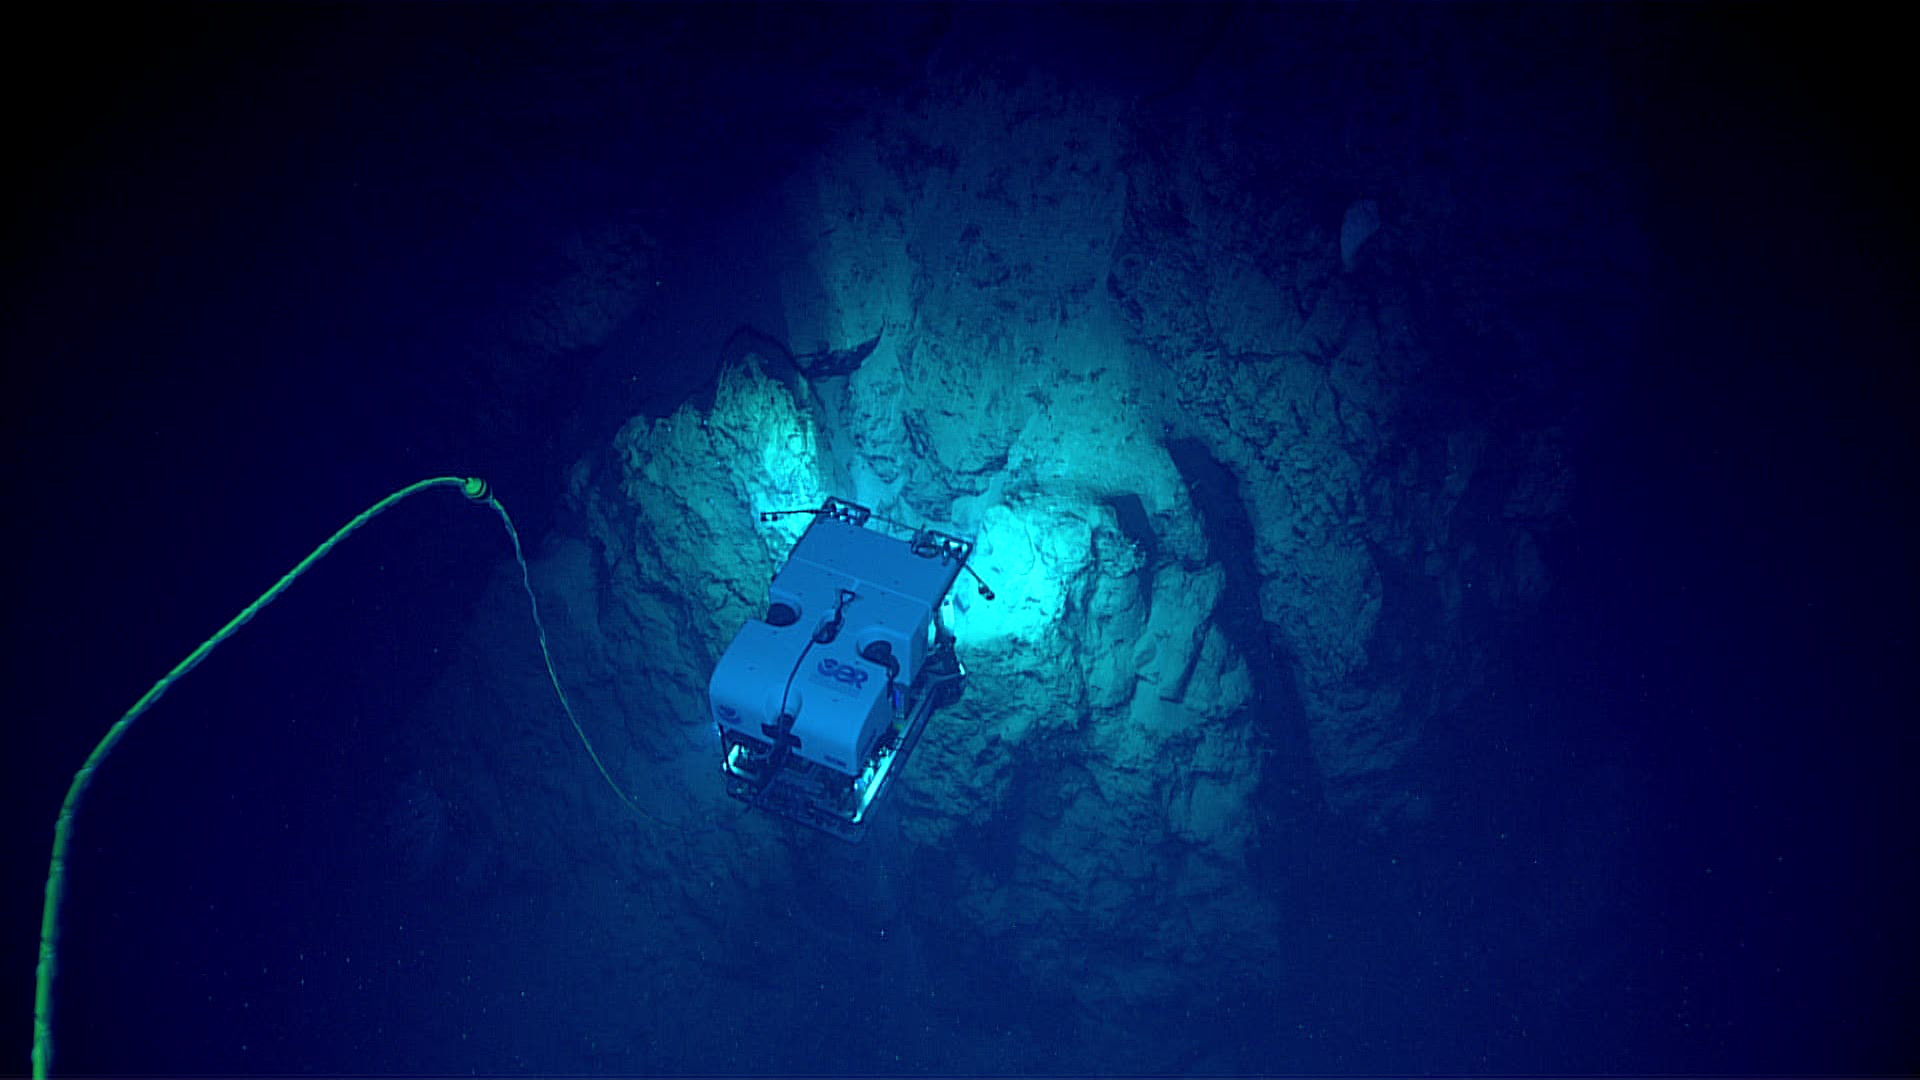 Figure 1. ROV Deep Discoverer exploring a narrow ridge at depths between 2,610-2,789 m off the south shore of Puerto Rico.